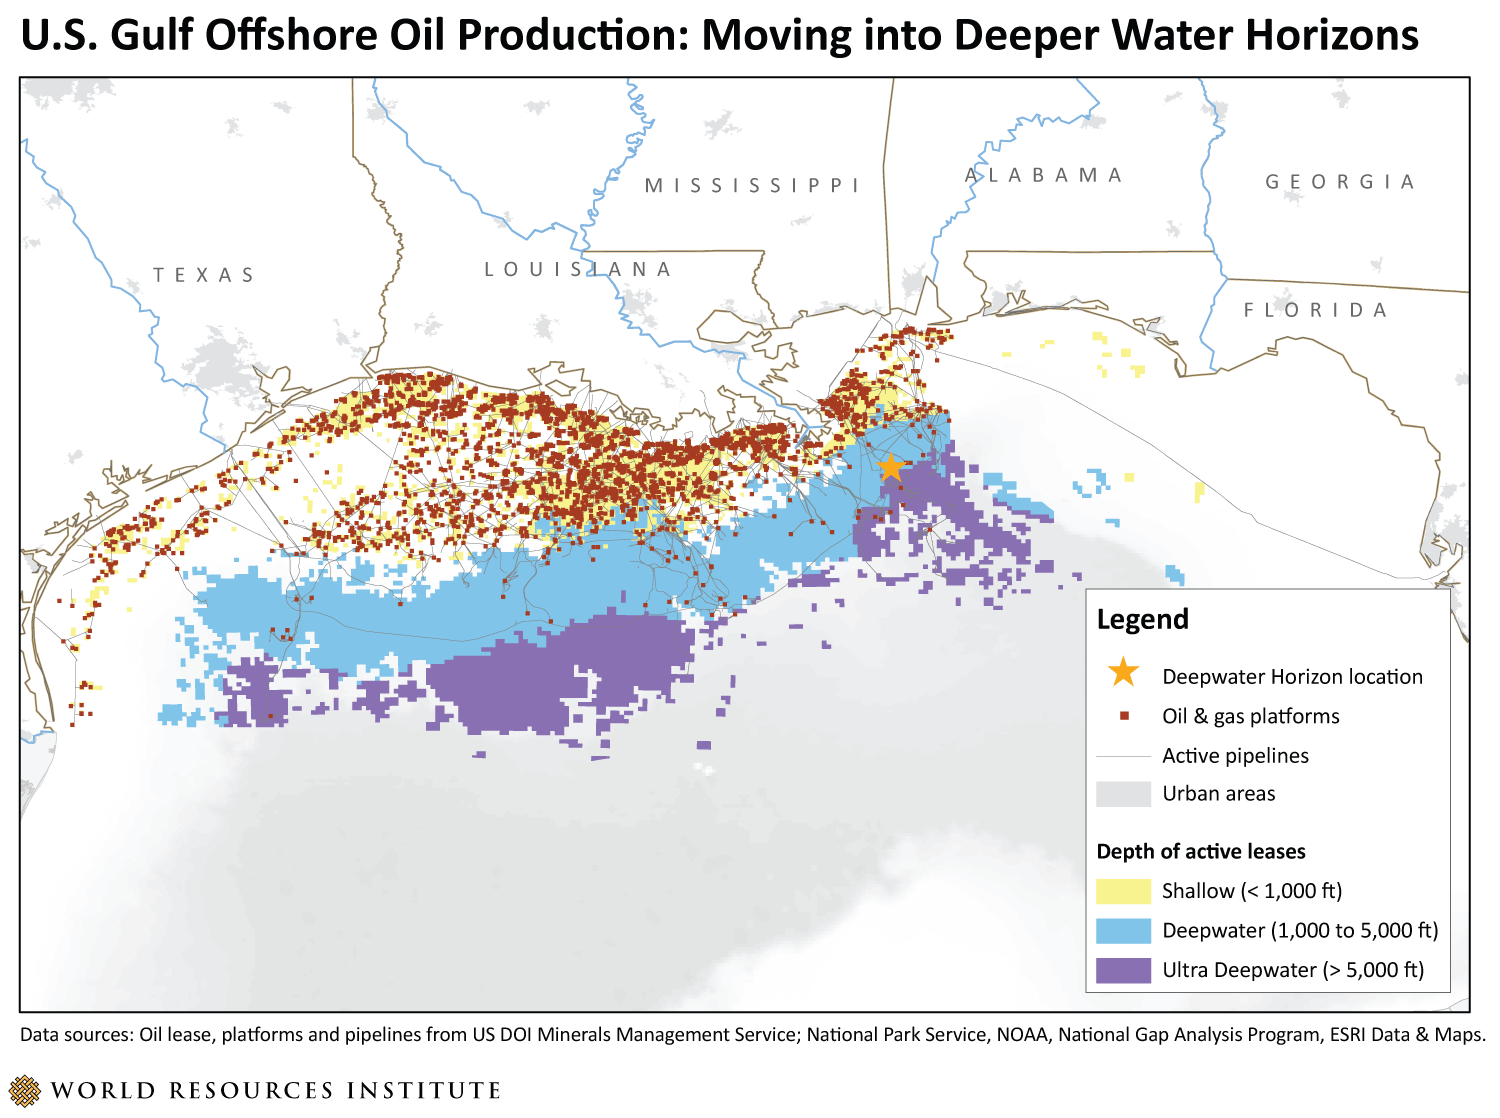 US Gulf Offshore Oil Production Moving into Deeper Water Horizons